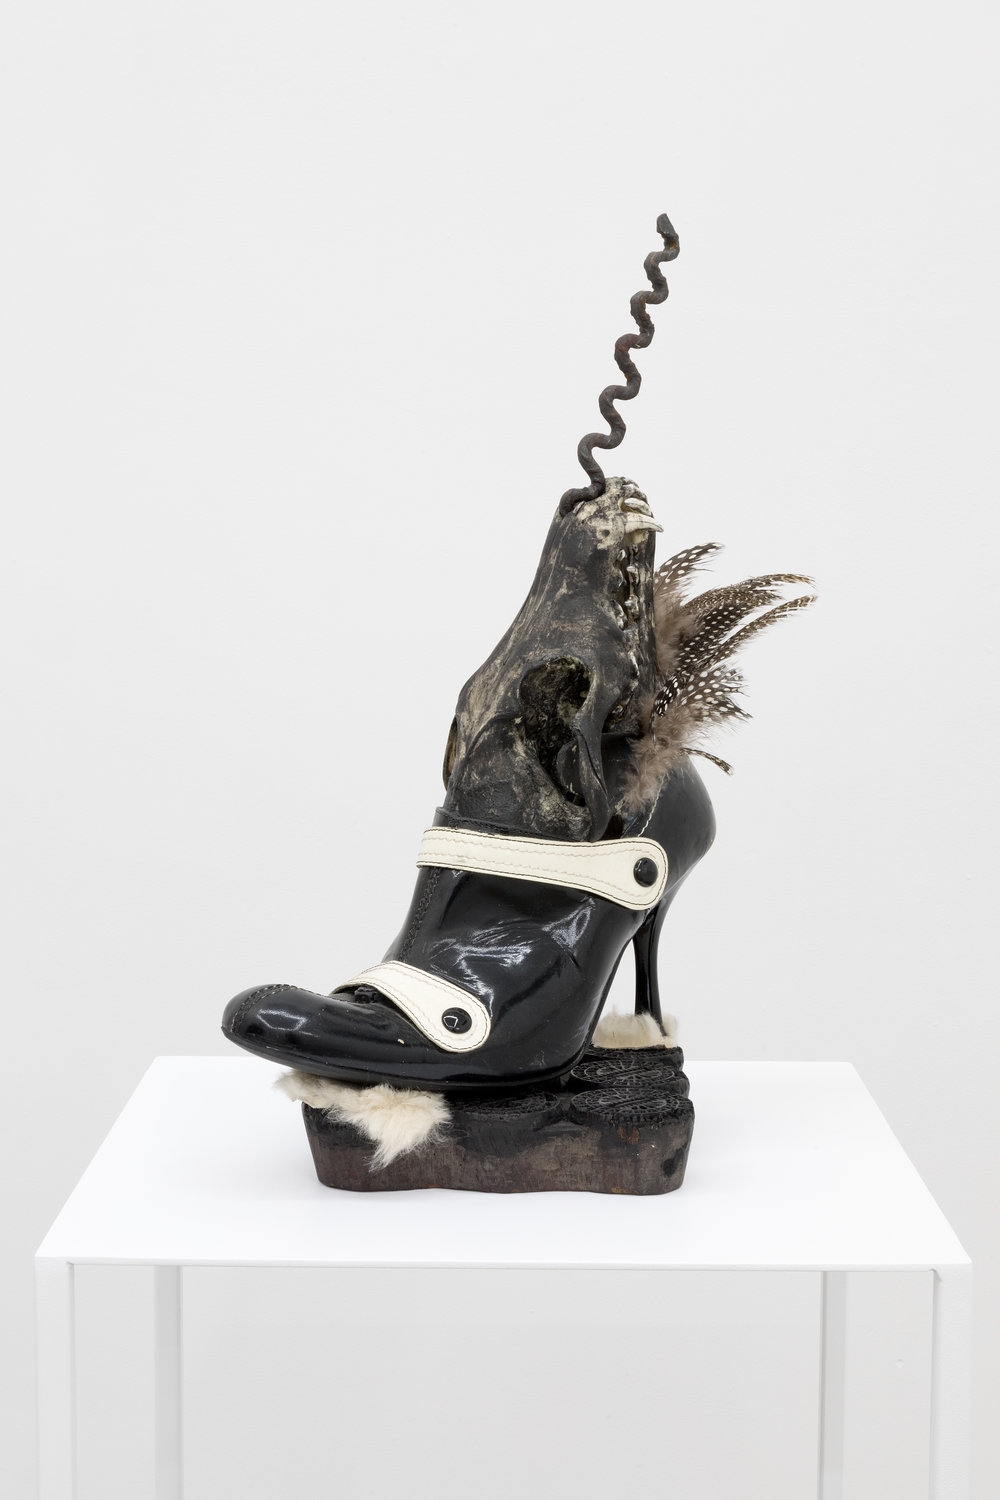 Genesis BREYER P-ORRIDGE,  Shoe Horn #7